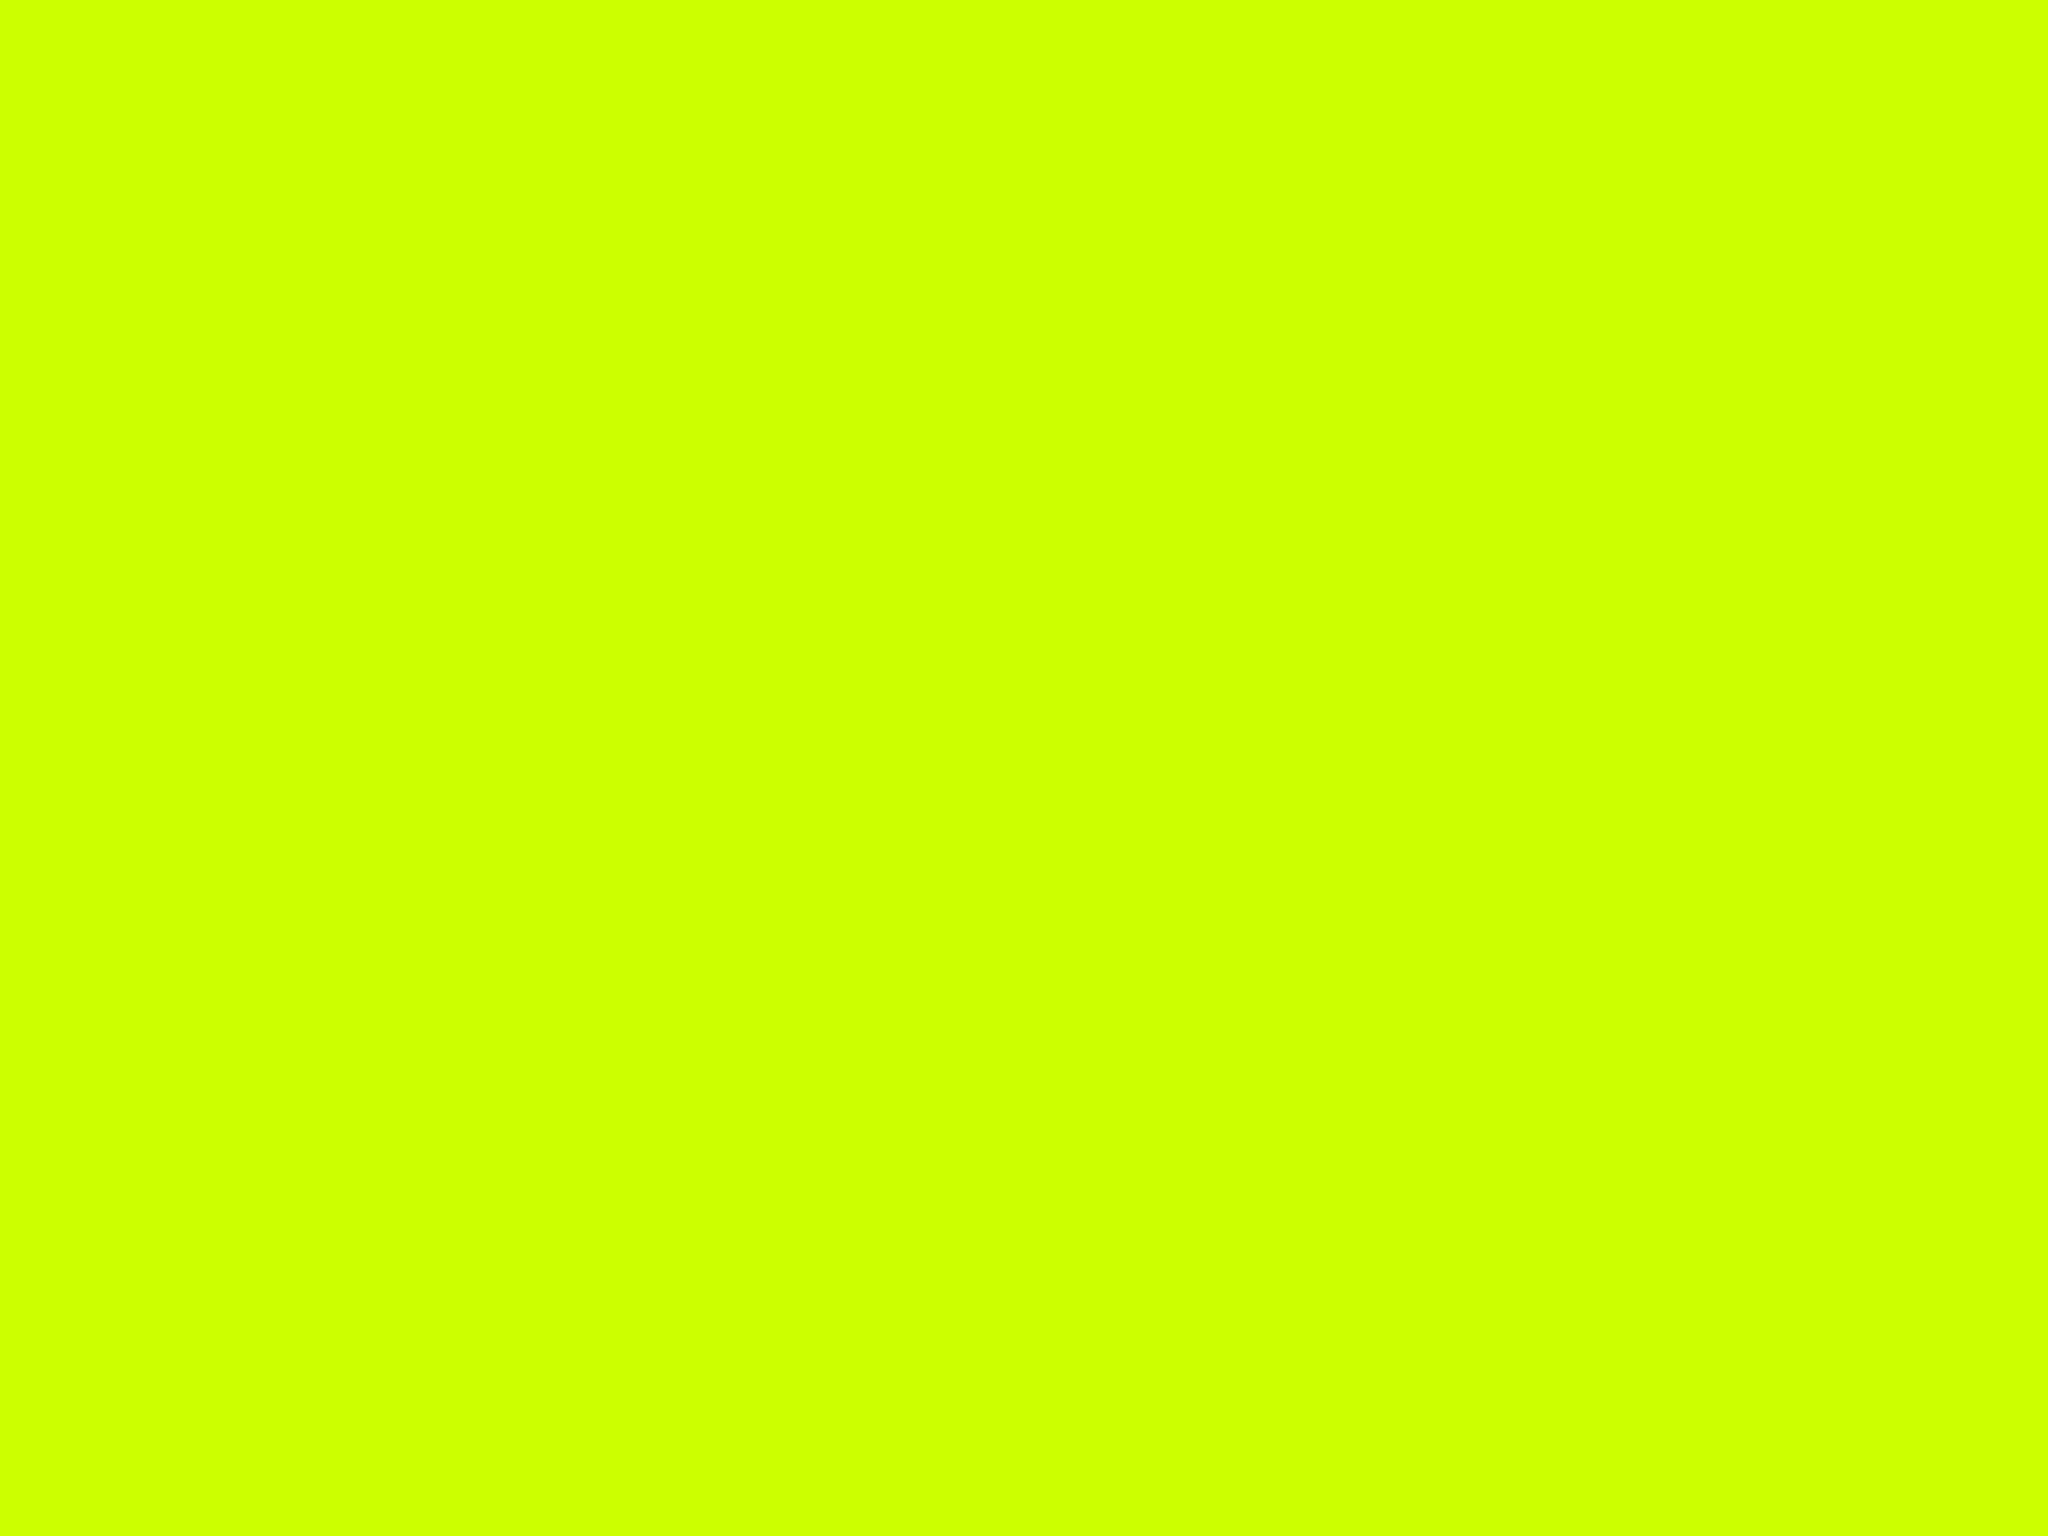 2048x1536 Fluorescent Yellow Solid Color Background